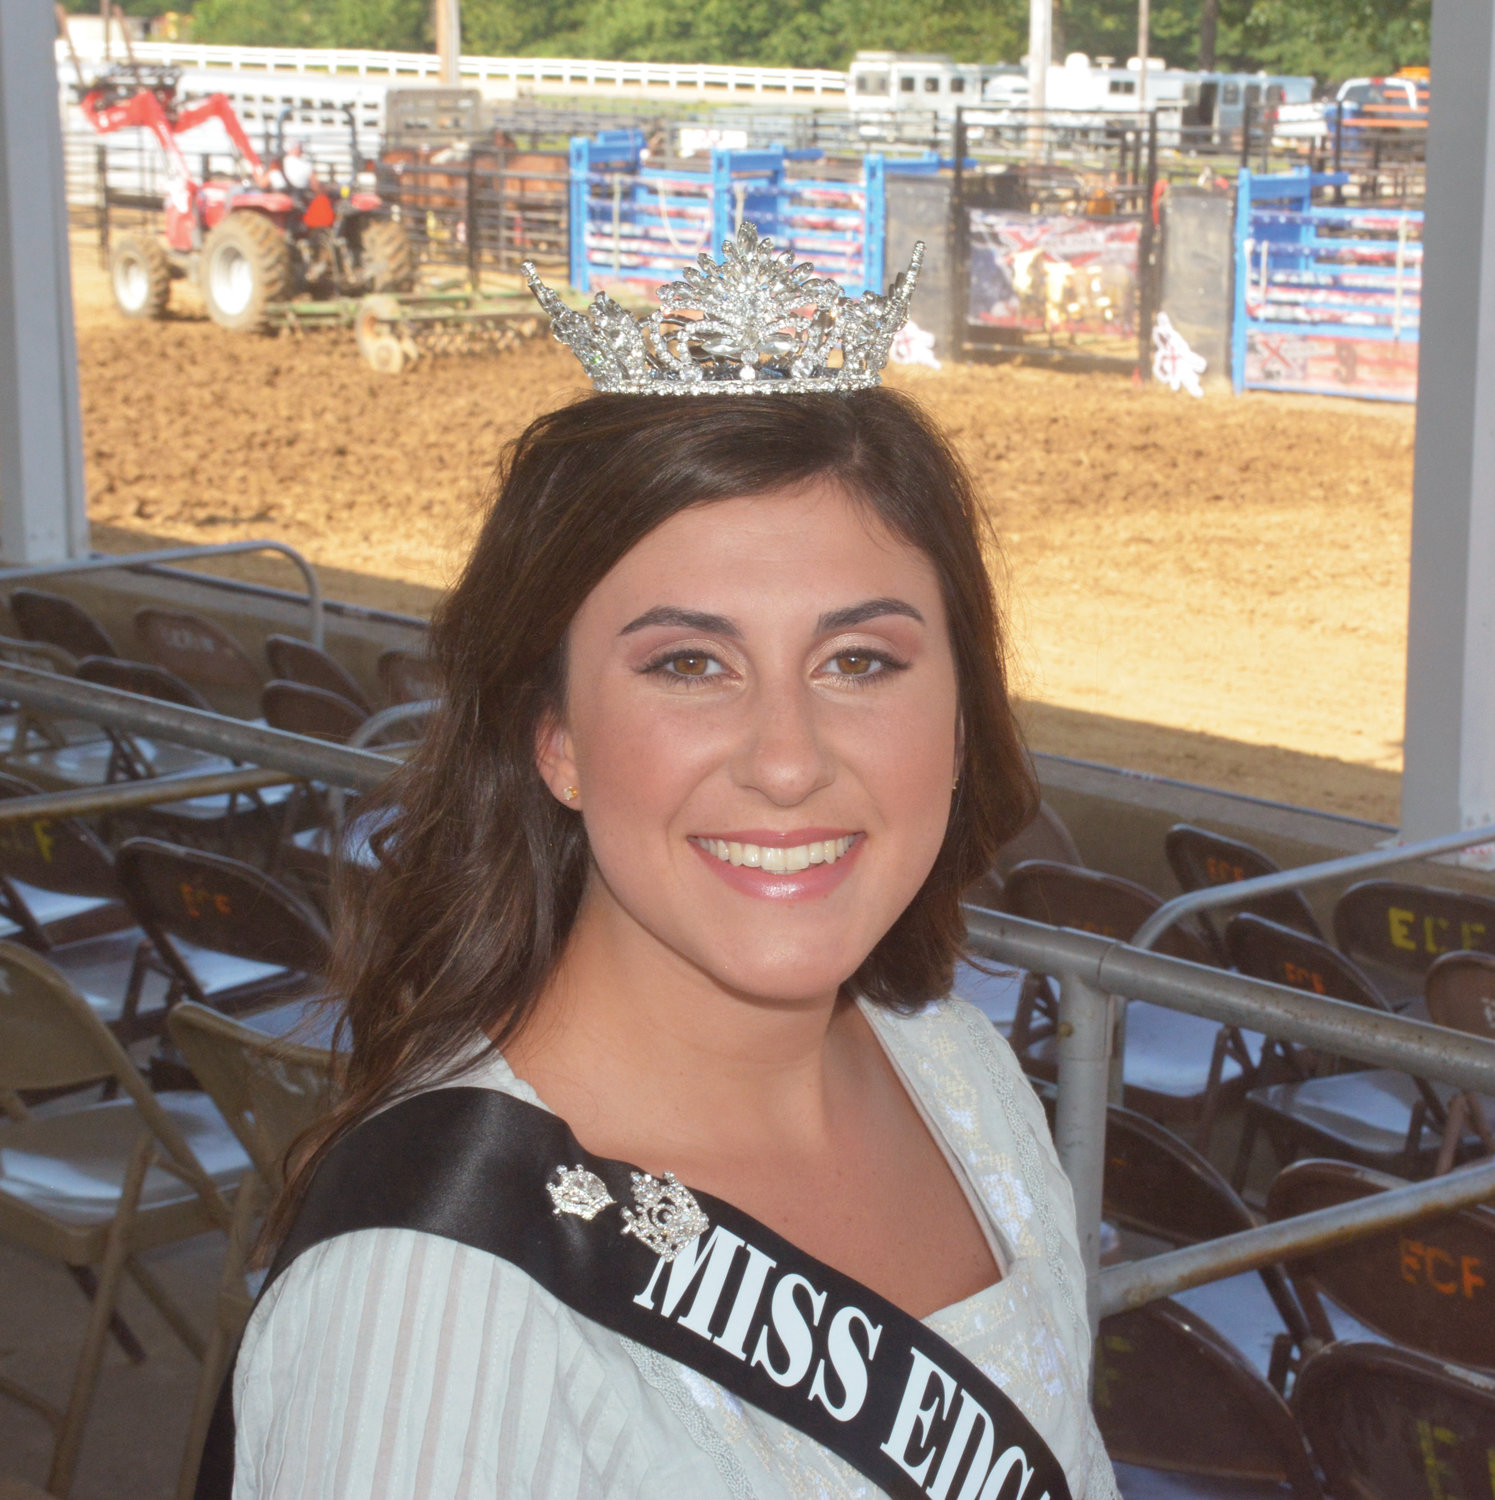 Teresa Twigg, the new Miss Edgar County Fair, sits in the grandstands as work goes on behind her getting the space ready for that night's rodeo performance.